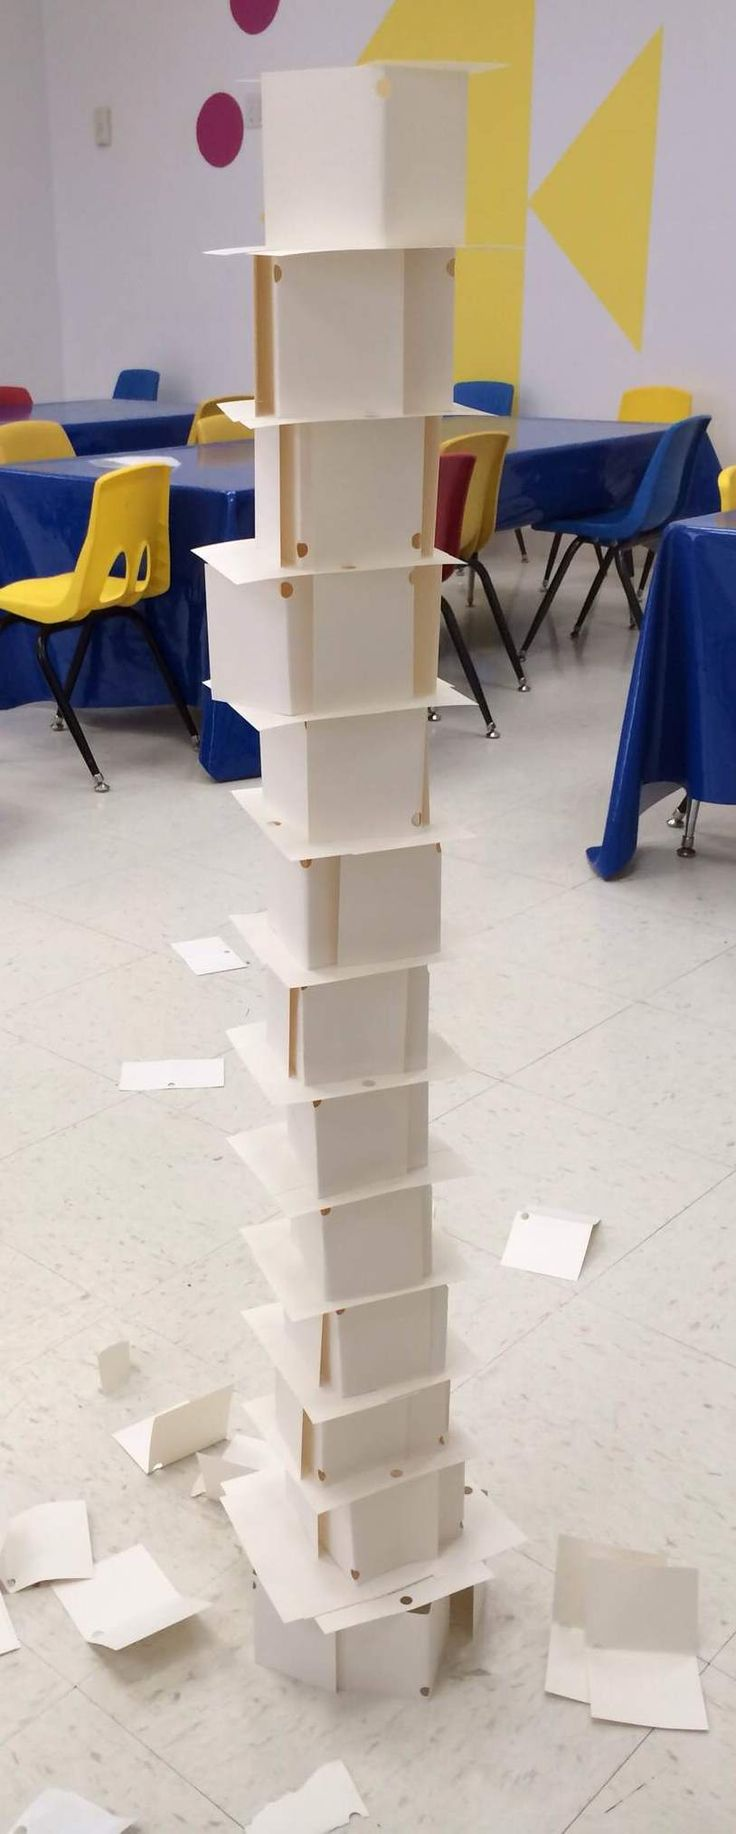 Index Card Towers: See how tall a freestandingtower you can build using just index cards (folding, tearing, crumpling, etc.) without using any scissors, tape, glue.